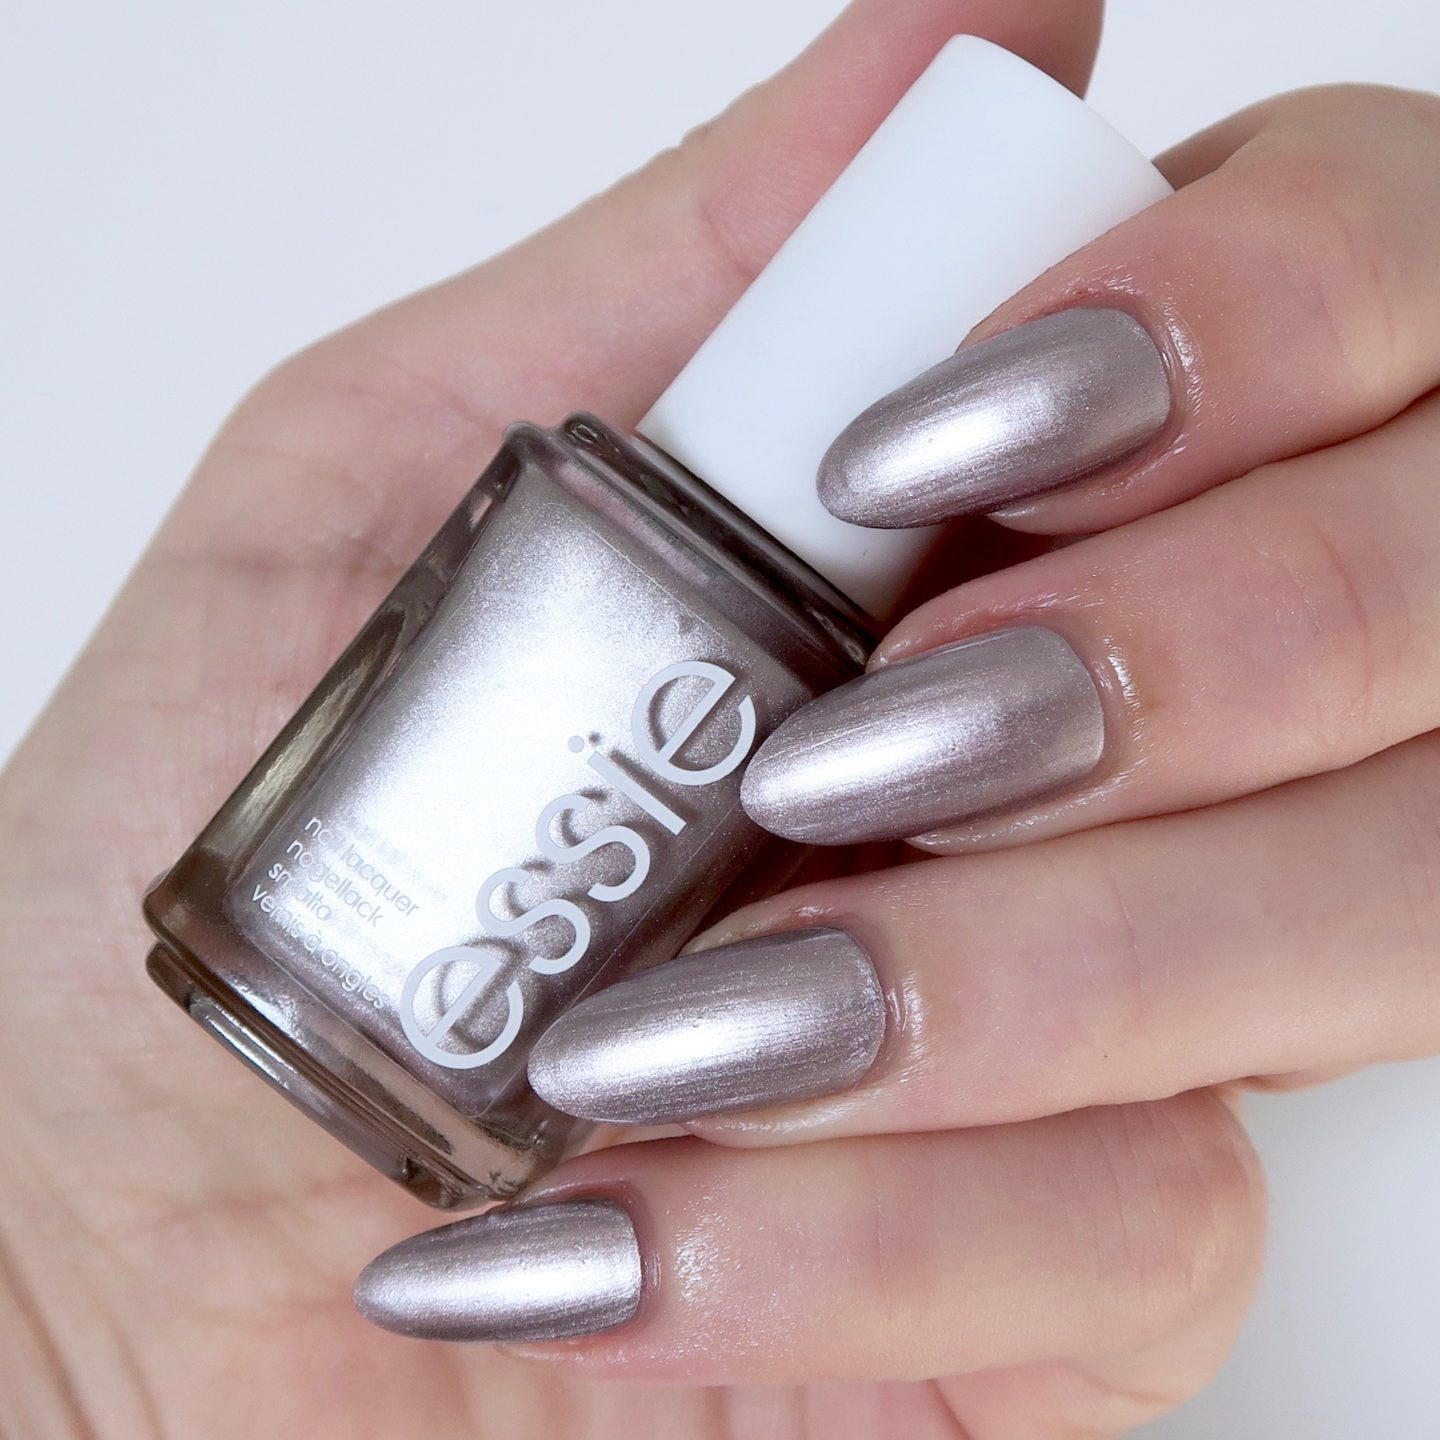 Essie Galaxy Metals 'out of this world'